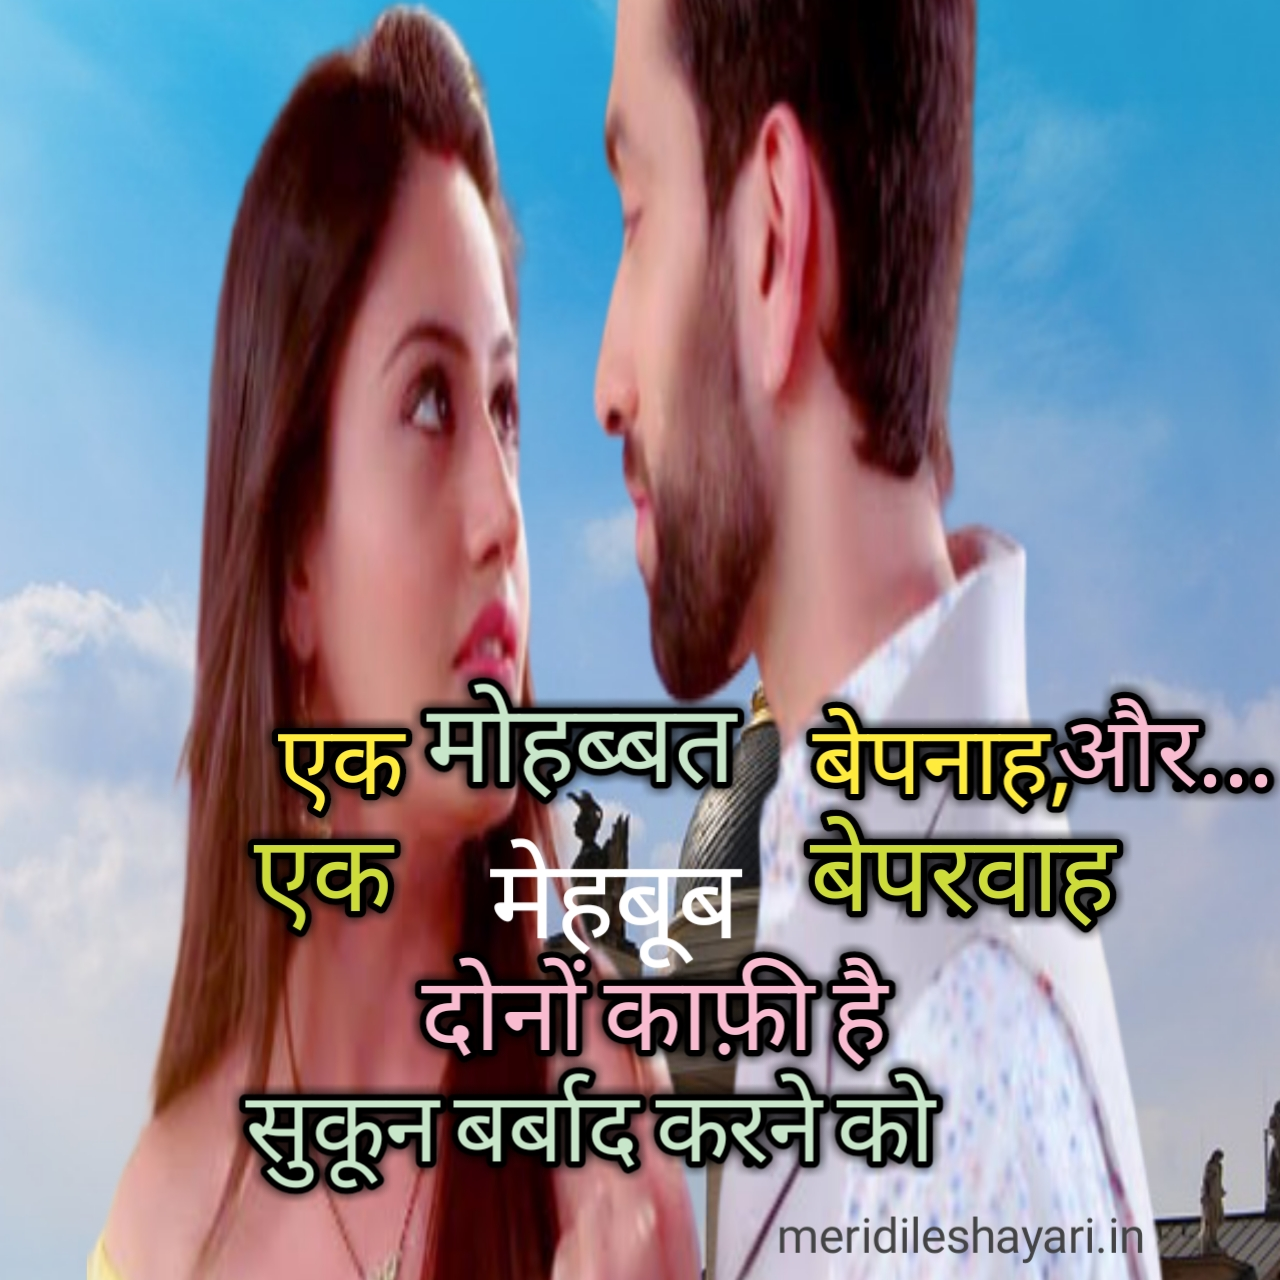 Mohabbat Shayari in Hindi,एक मेहबूब बेपरवाह,mohabbat shayari in hindi font, mohabbat shayari hindi mai, mohabbat shayari hindi me, mohabbat ki shayari in hindi, mohabbat shayari in hindi for girlfriend, mohabbat shayari in hindi 2 lines.